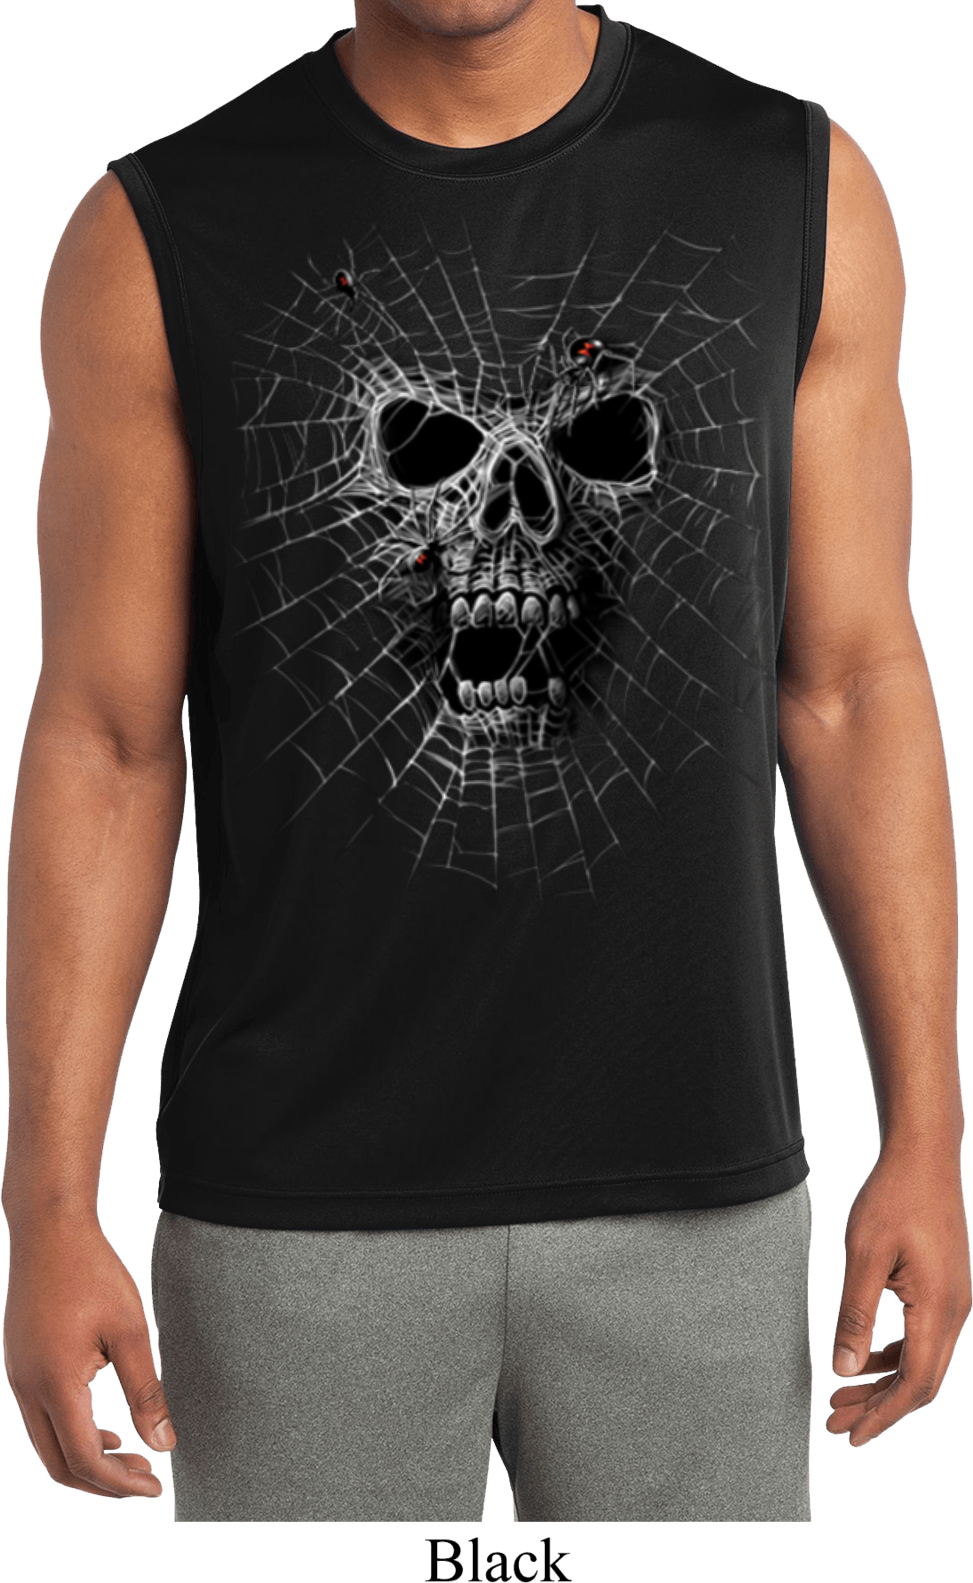 Black Widow Mens Sleeveless Moisture Wicking Shirt Black